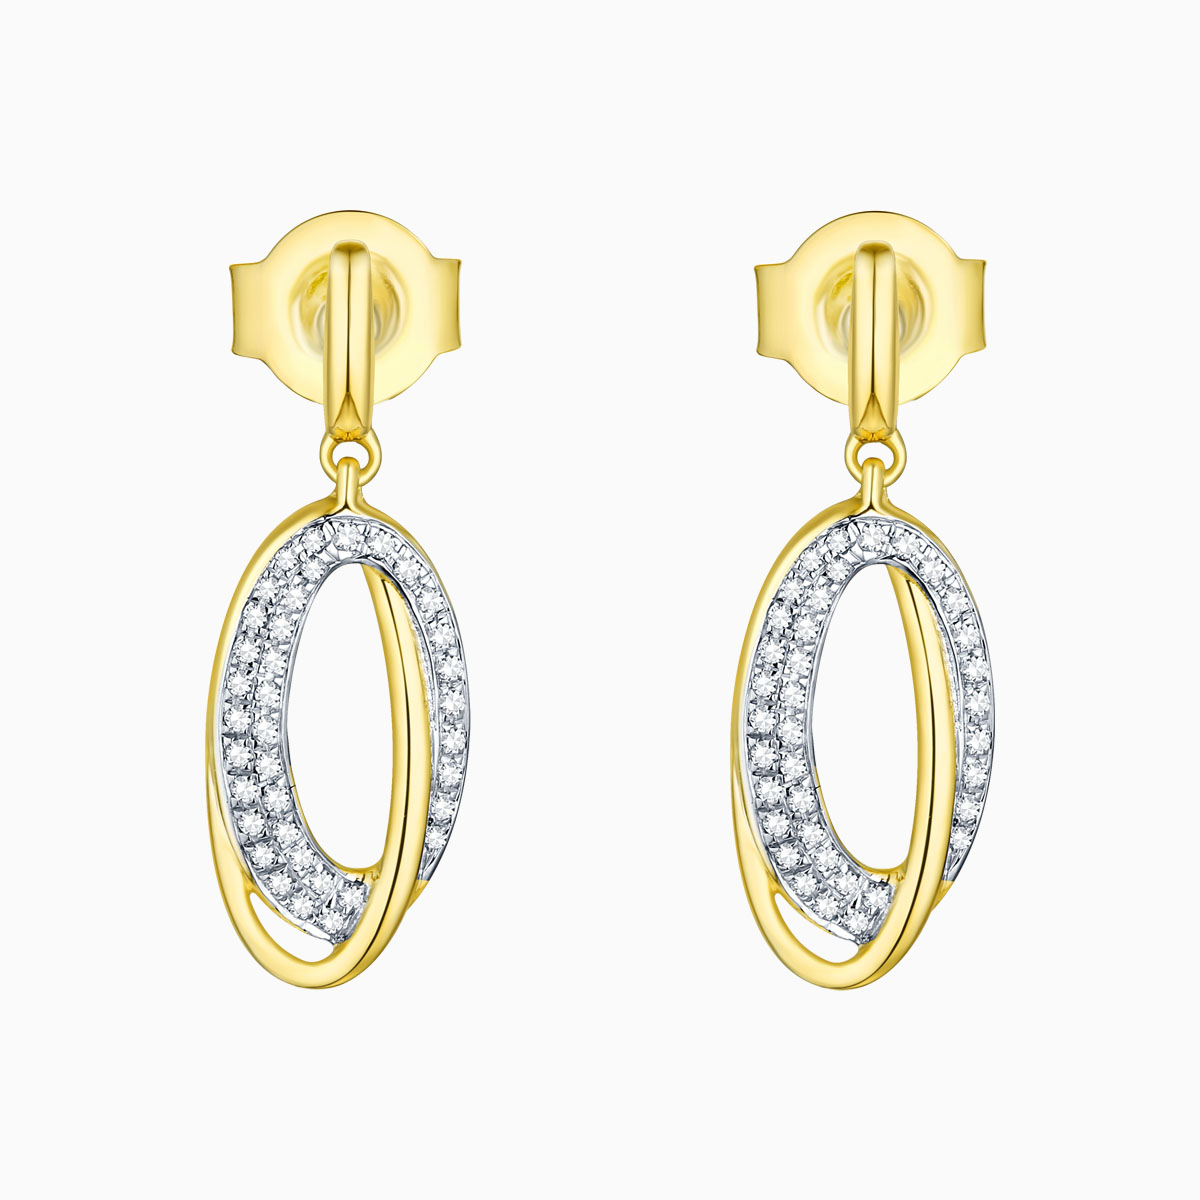 E13634WHT- 14K Yellow Gold Diamond Earrings, 0.11 TCW